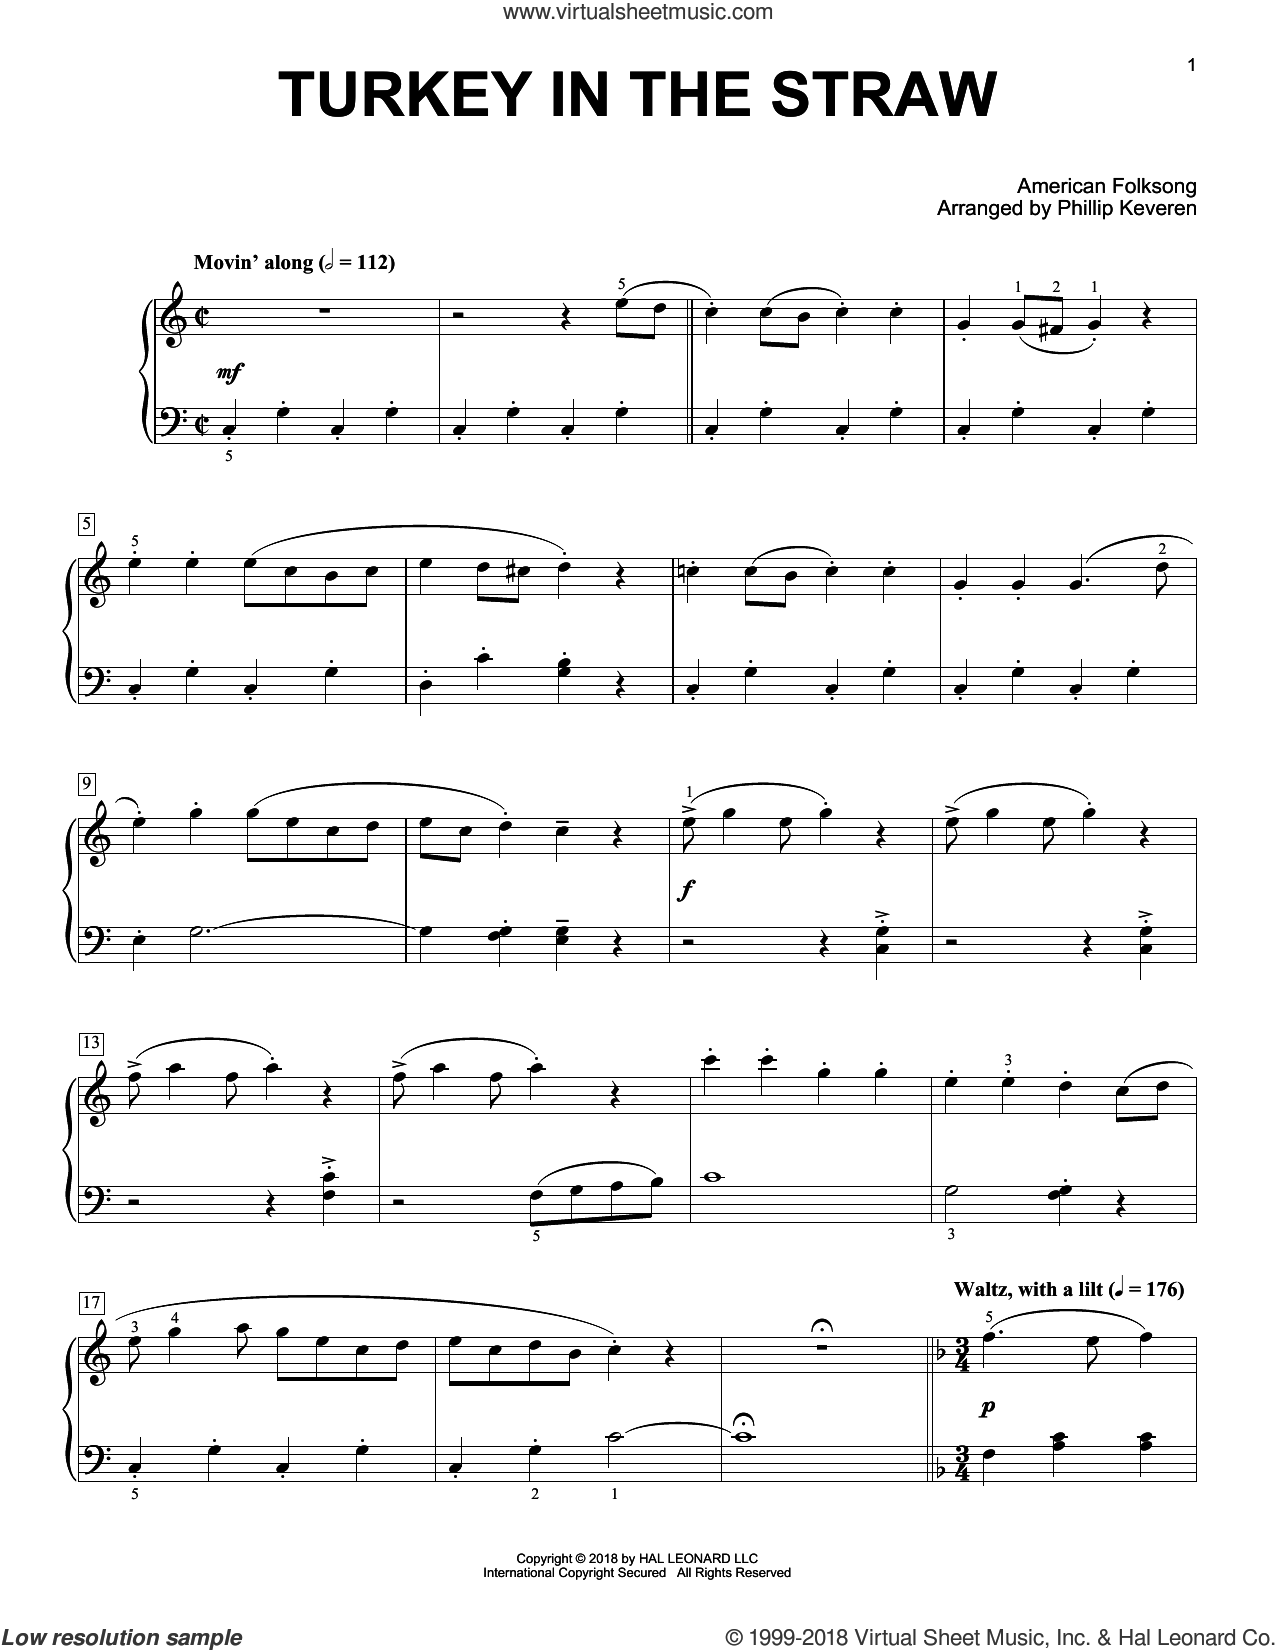 Turkey In The Straw [Classical version] (arr. Phillip Keveren) sheet music for piano solo by American Folksong and Phillip Keveren, intermediate skill level